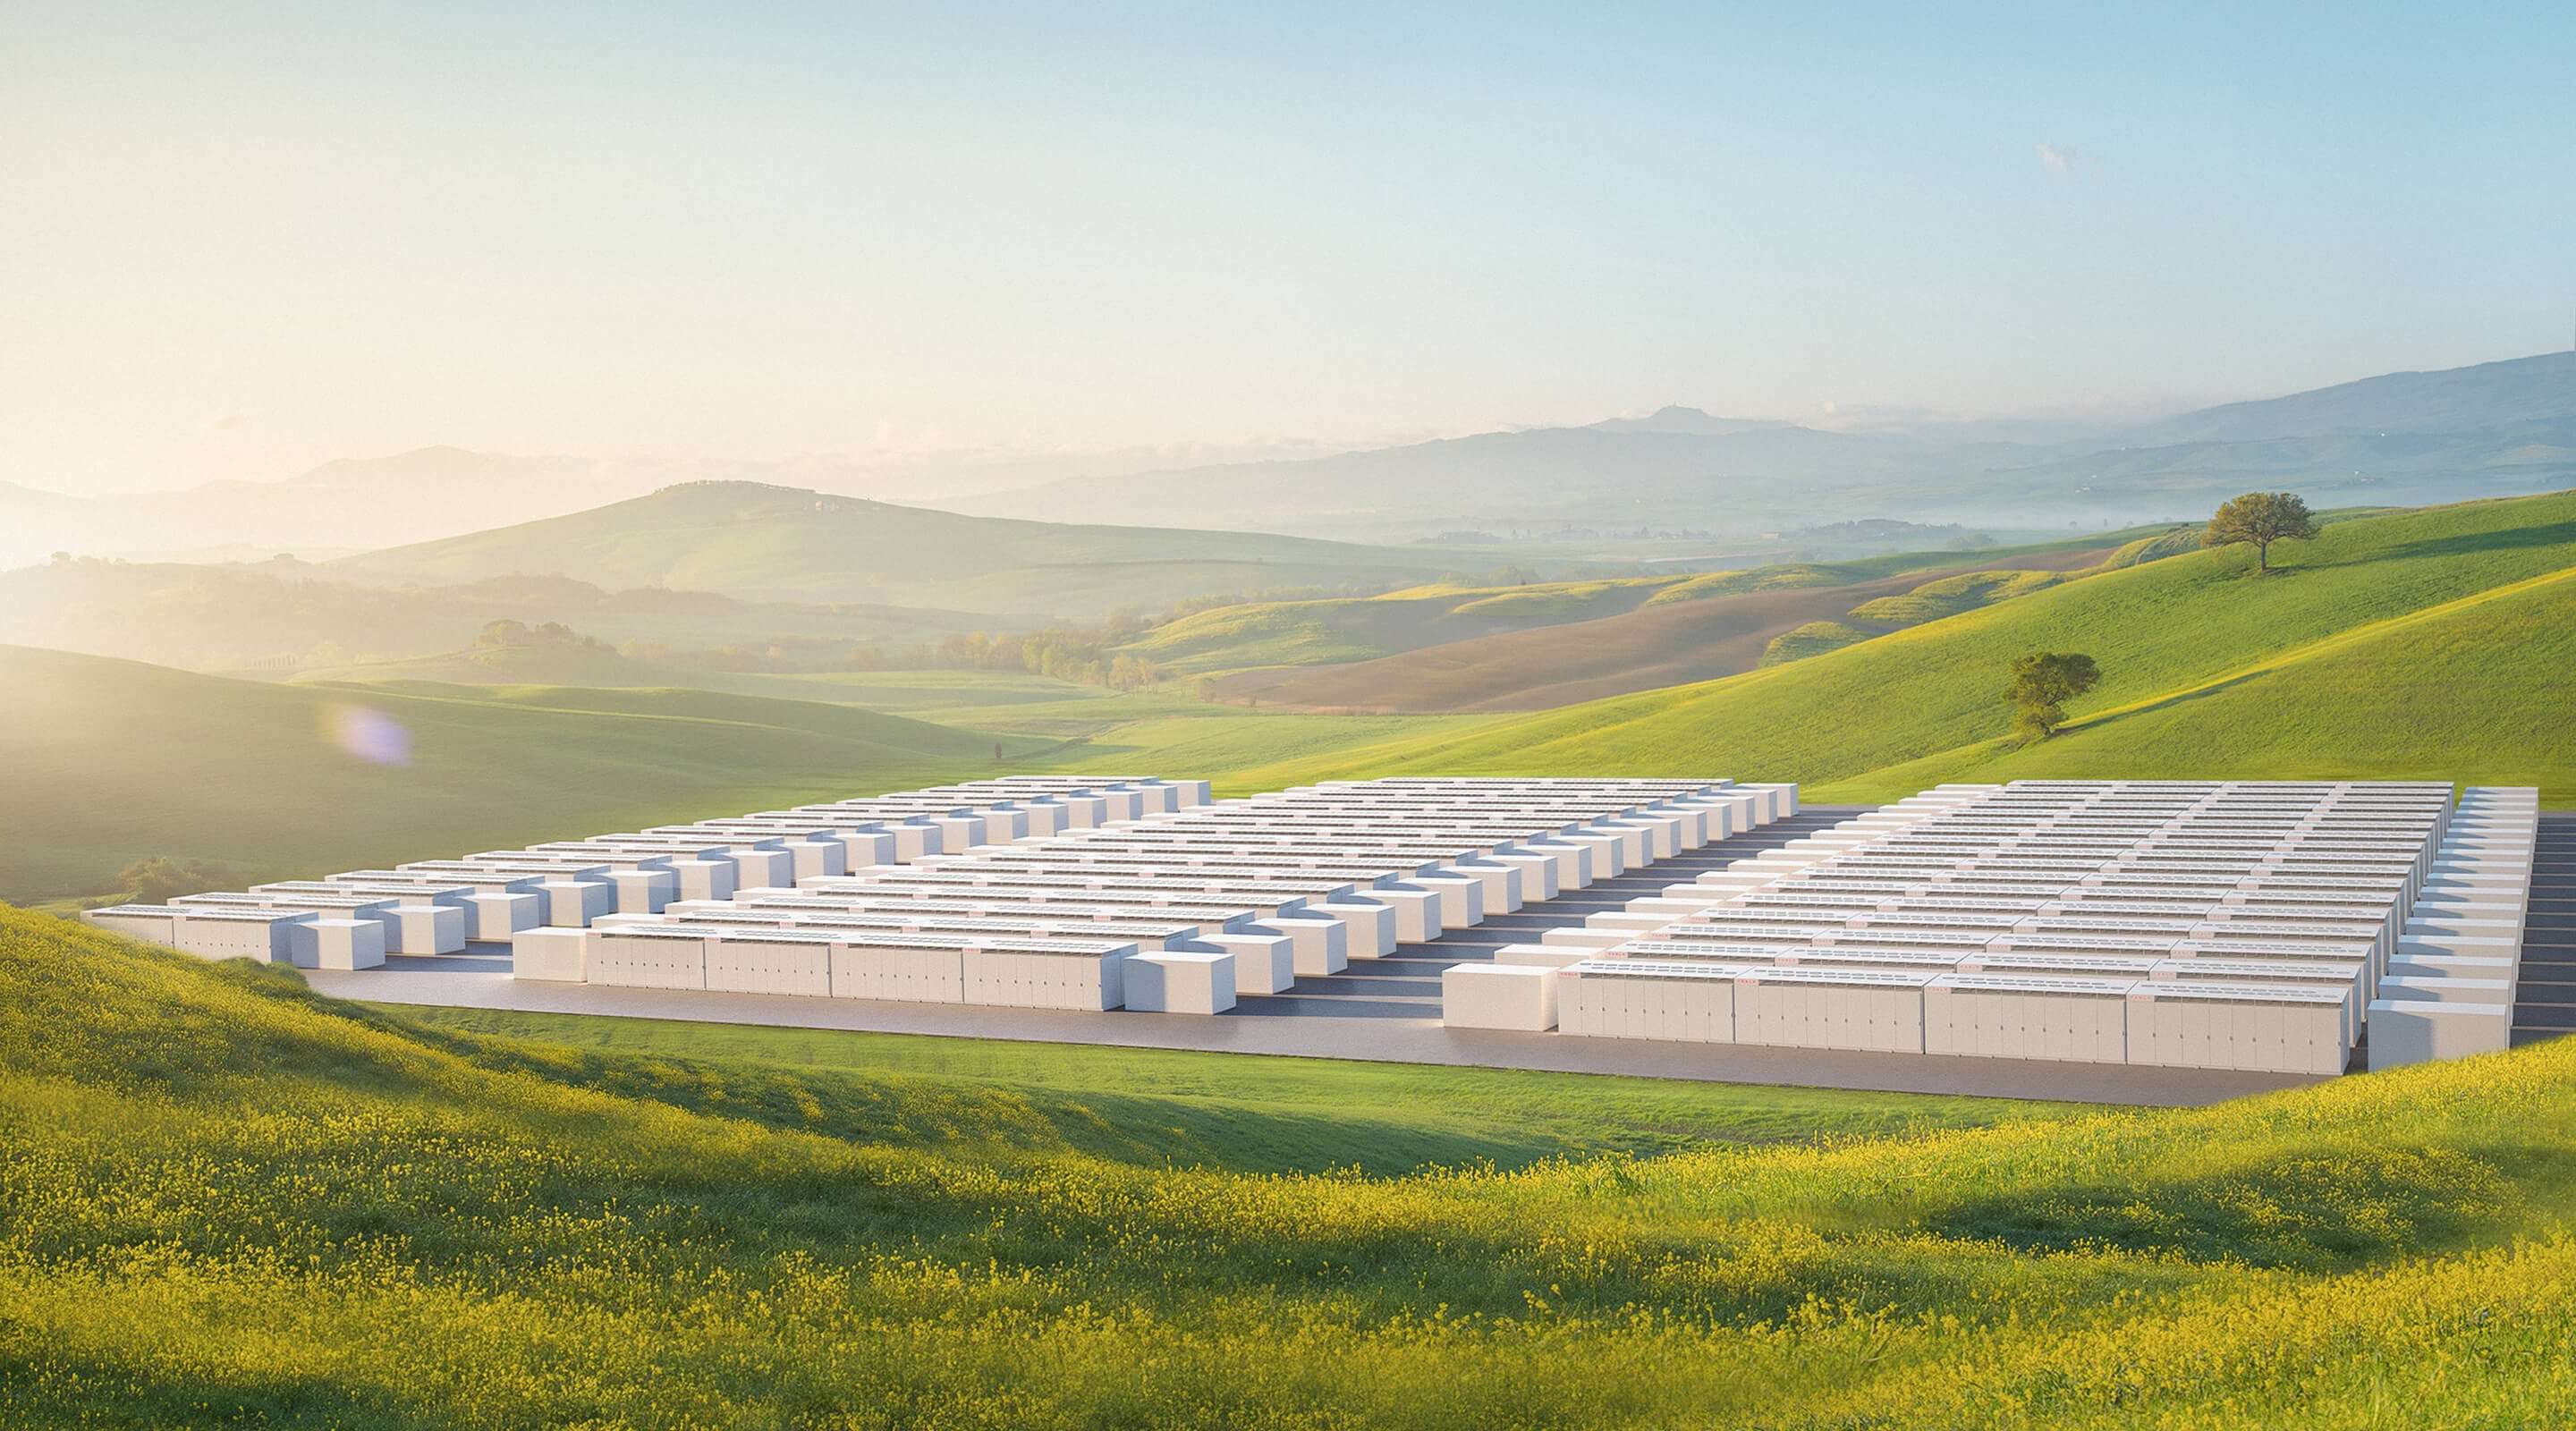 Tesla Announces The Megapack Energy Storage System The